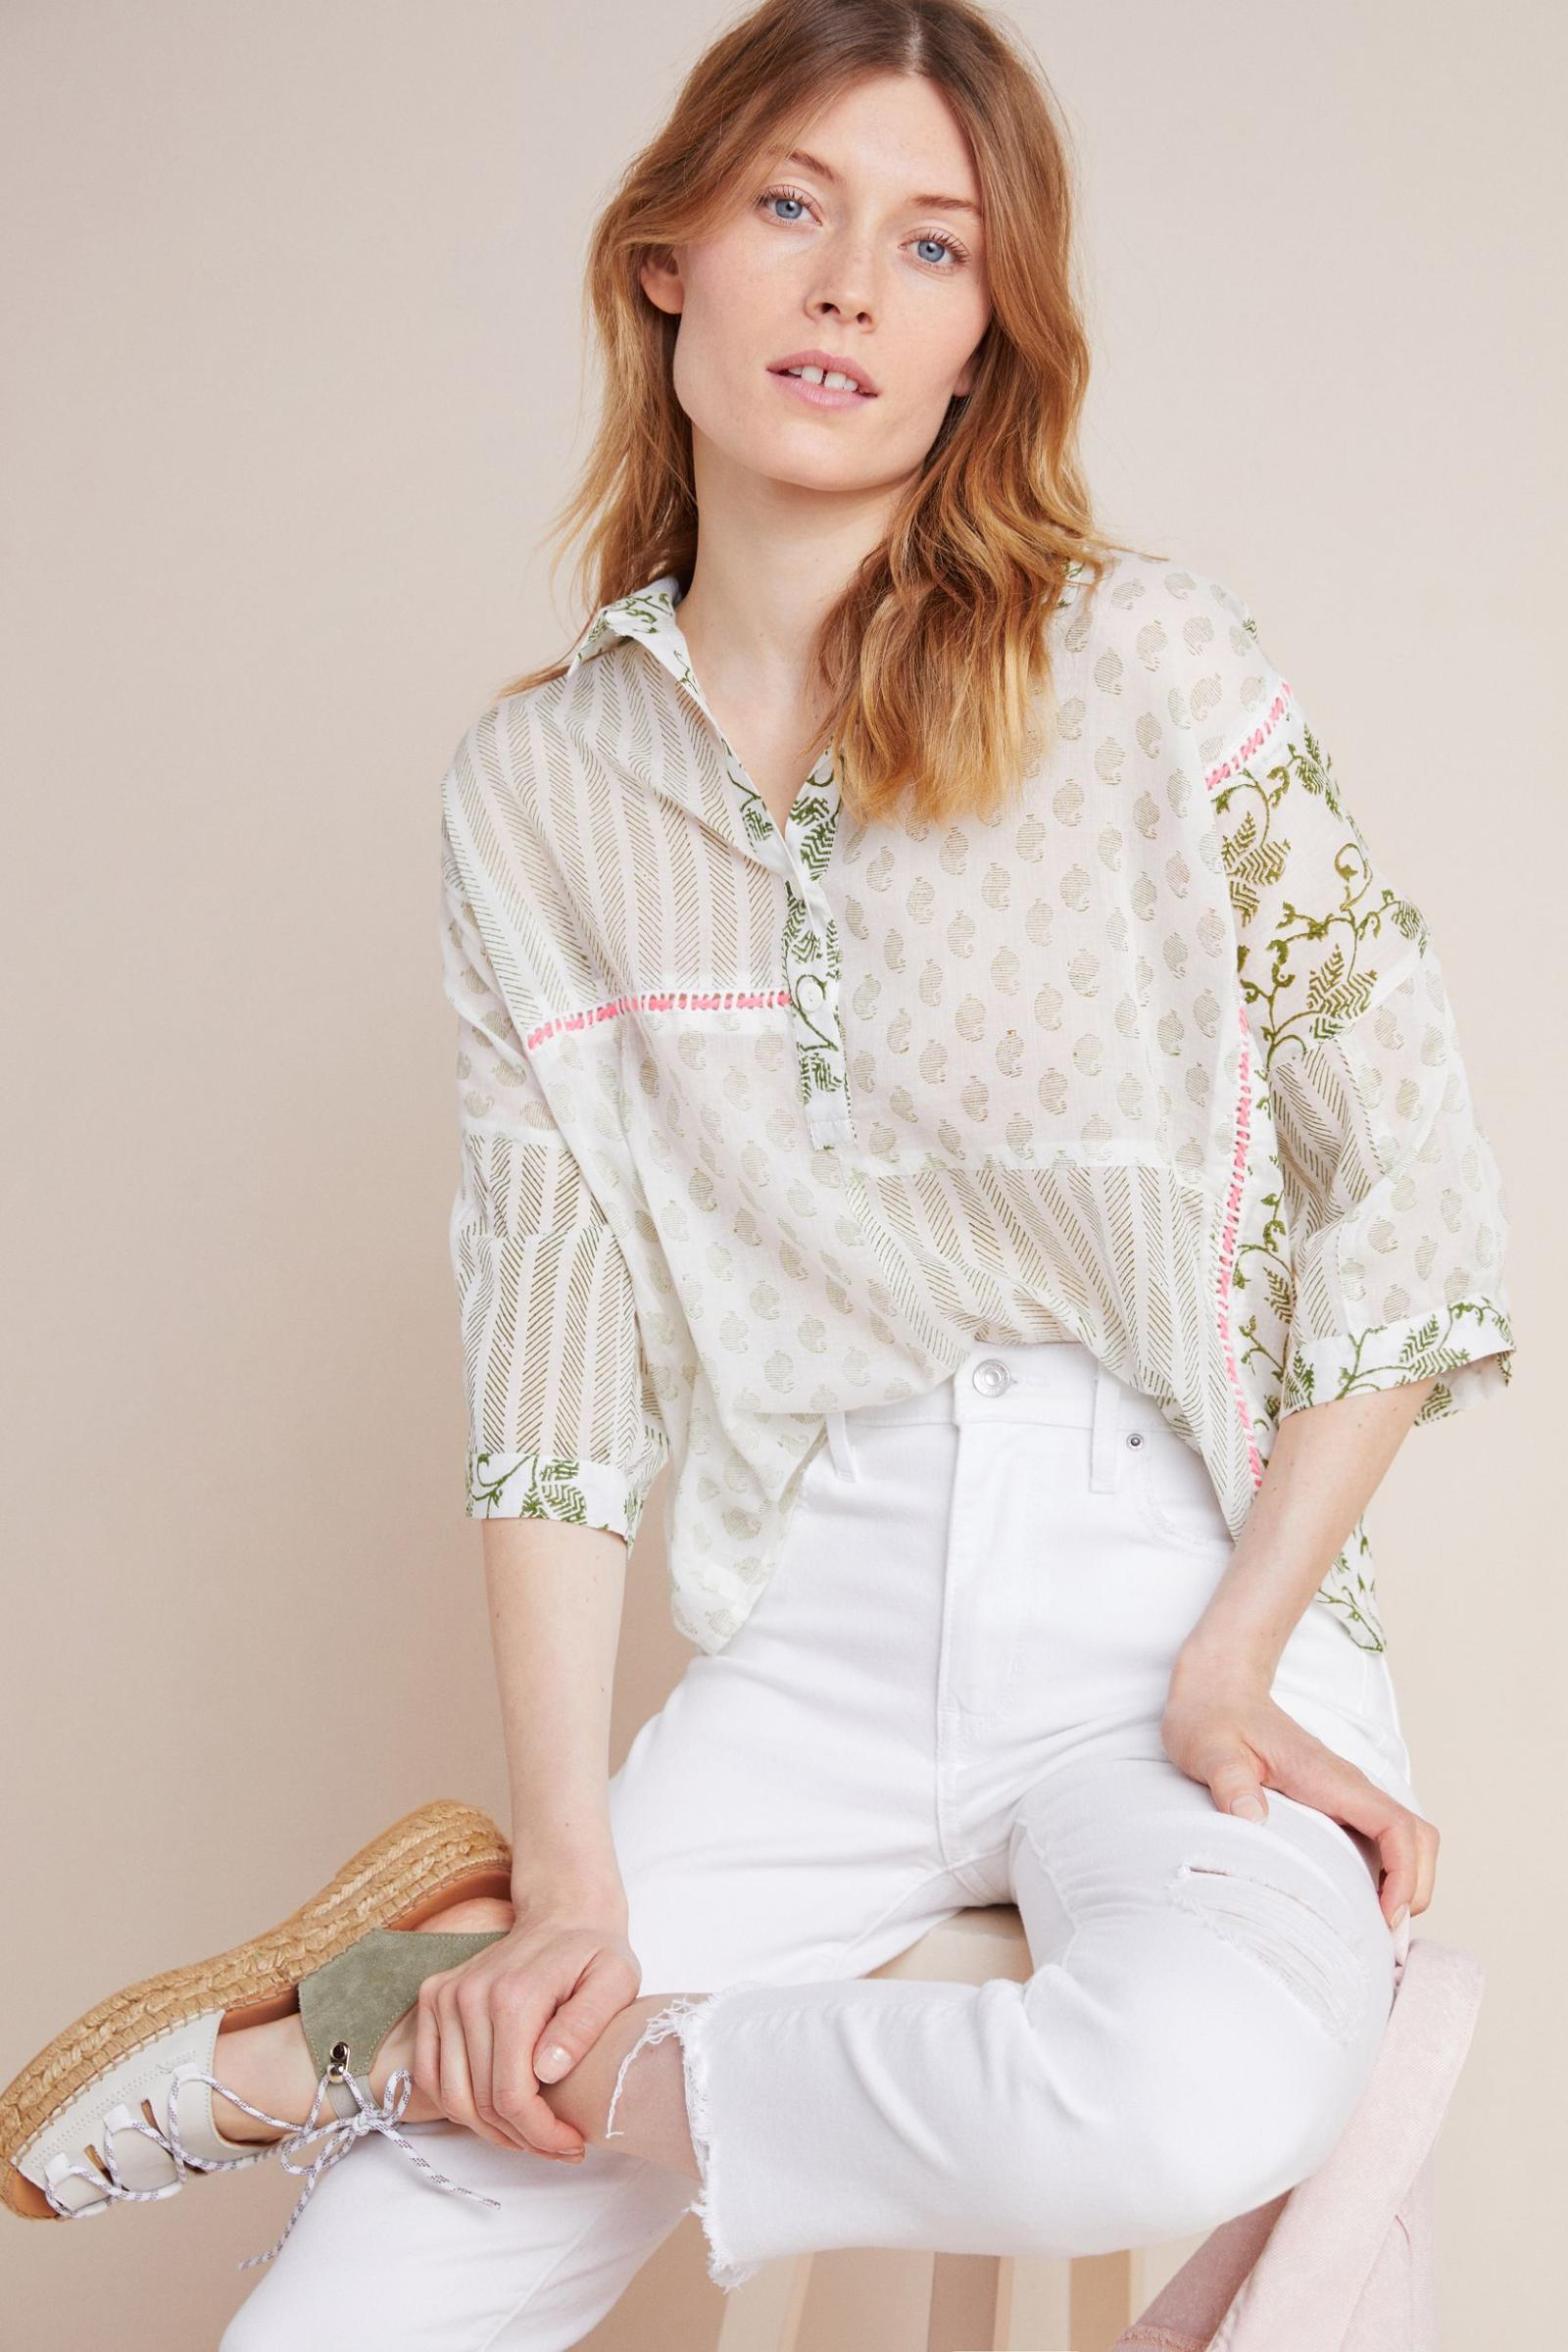 AM.IT by Amit Aggarwal Josefa Henley Blouse